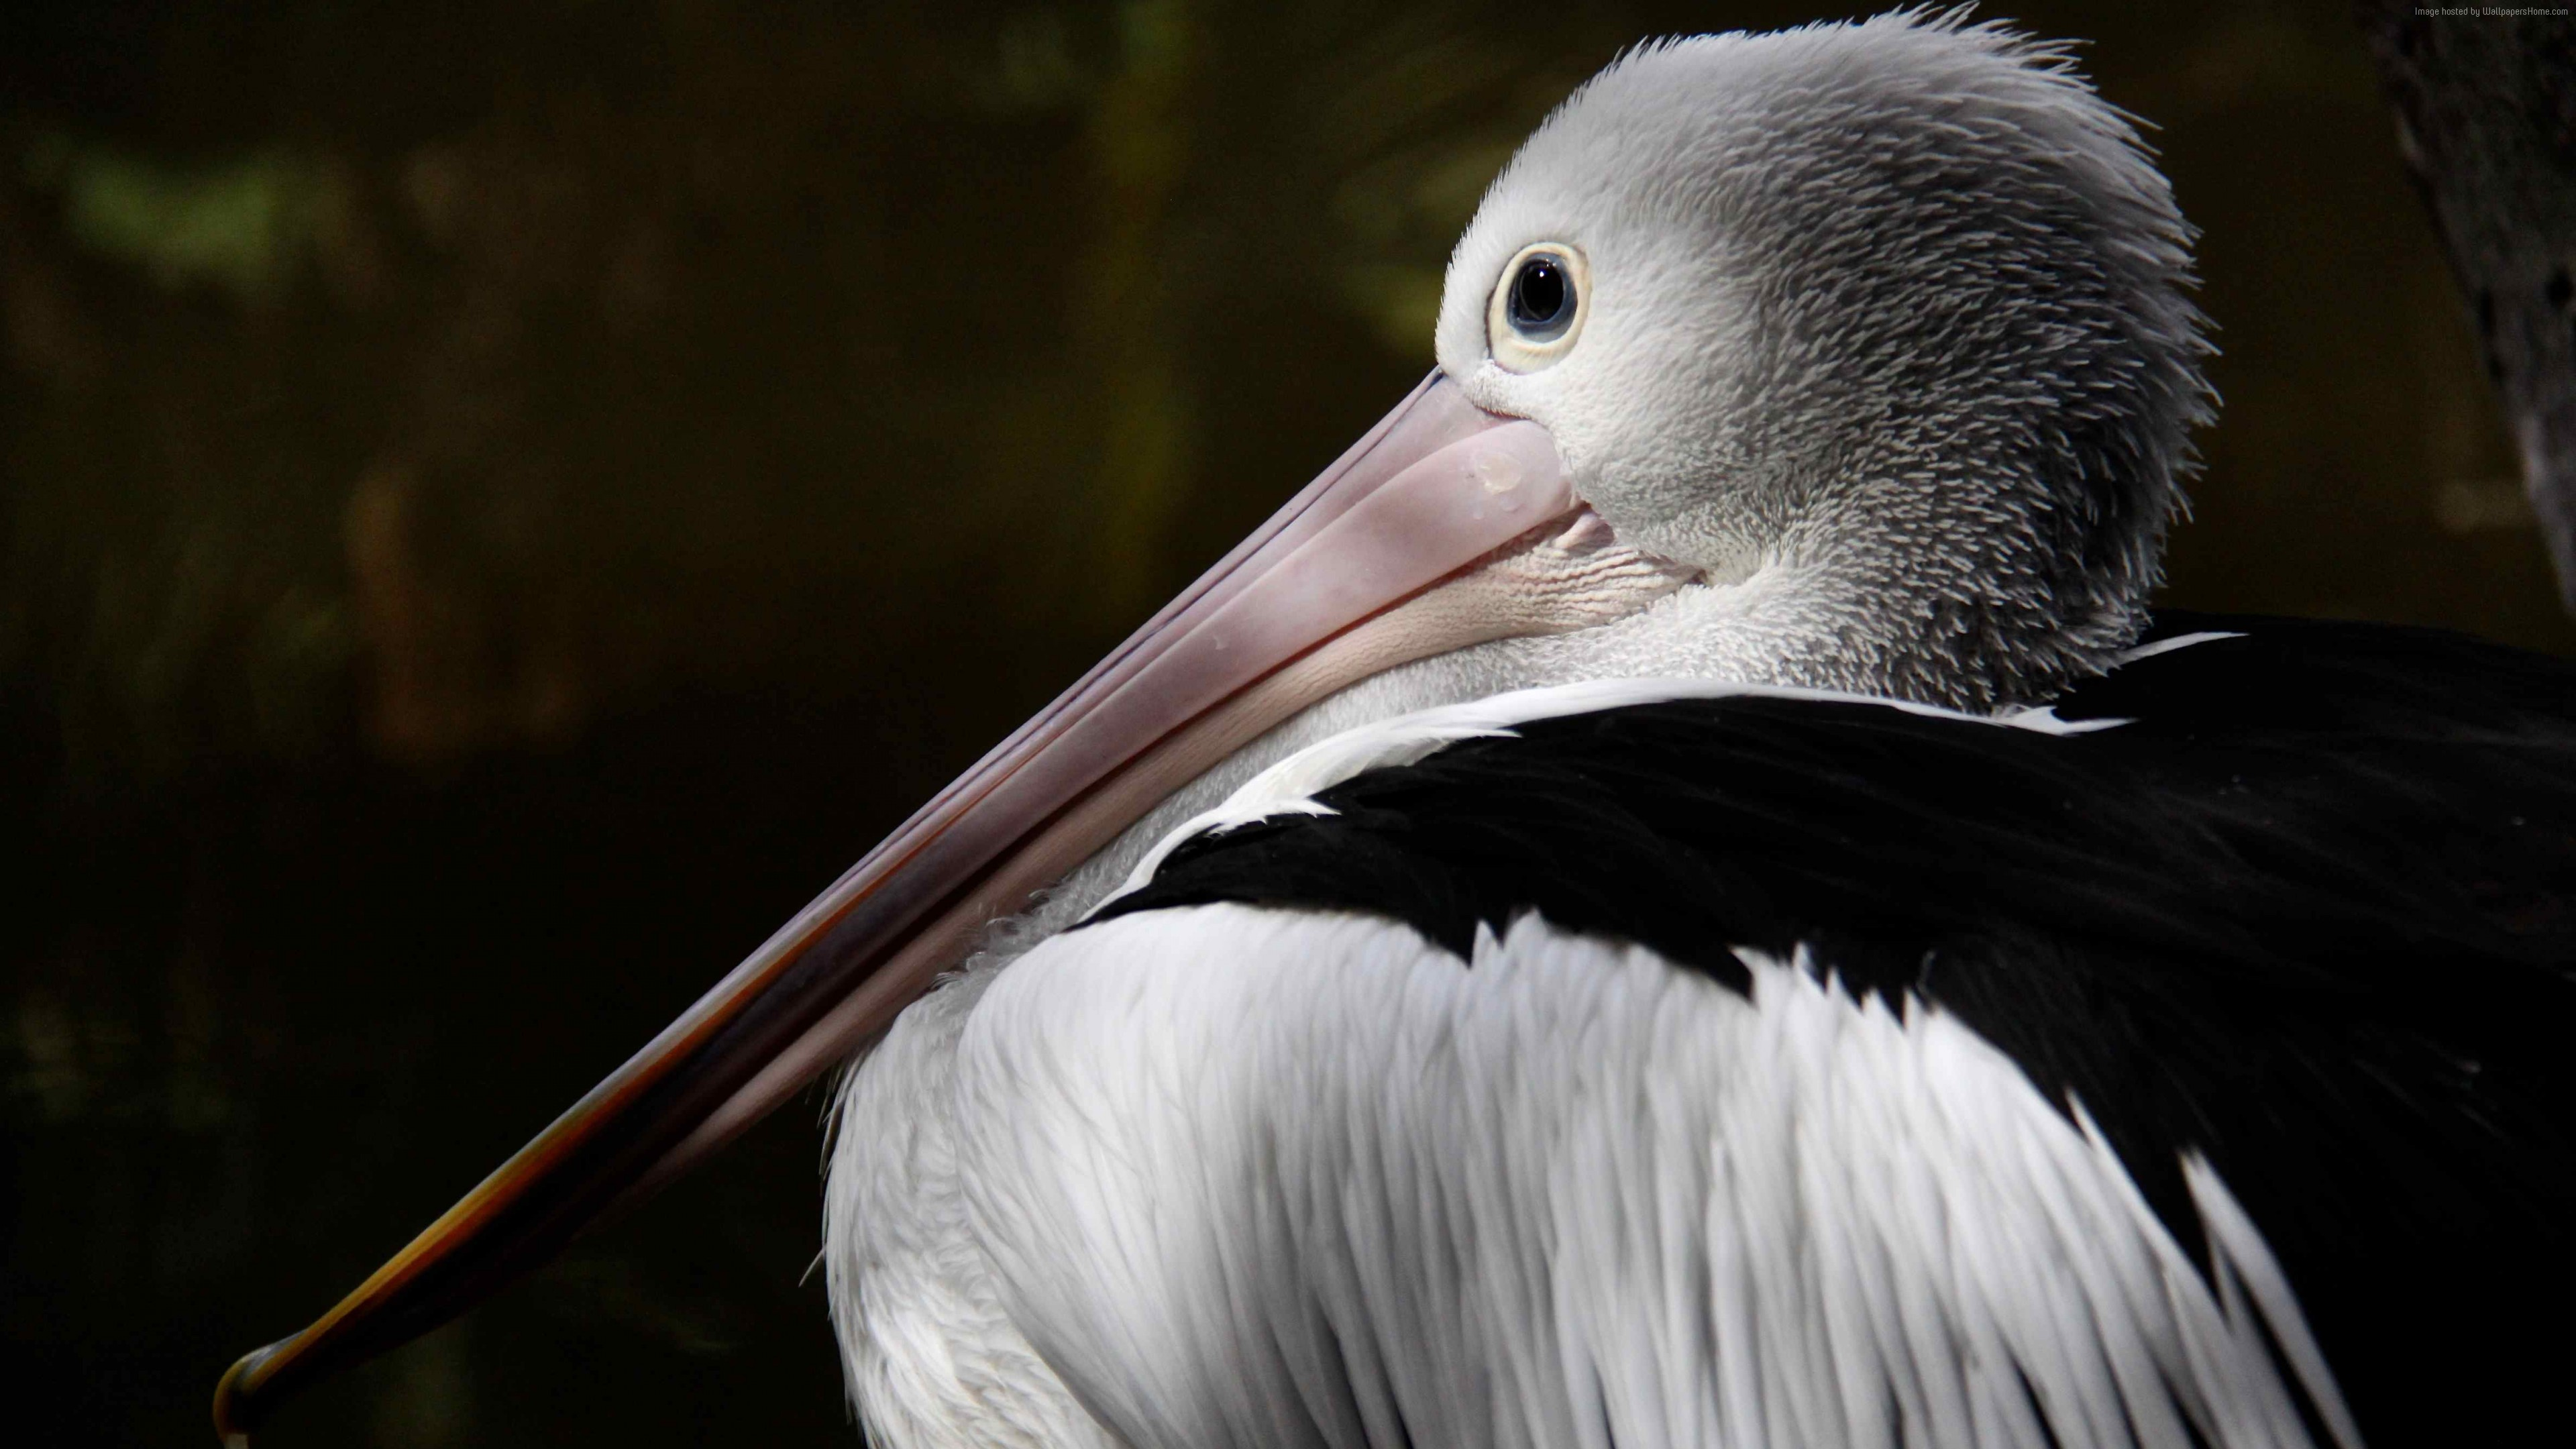 Wallpaper Australian pelican, New Guinea, close-up, white, gray, bird, animal, nature, tourism, Animals